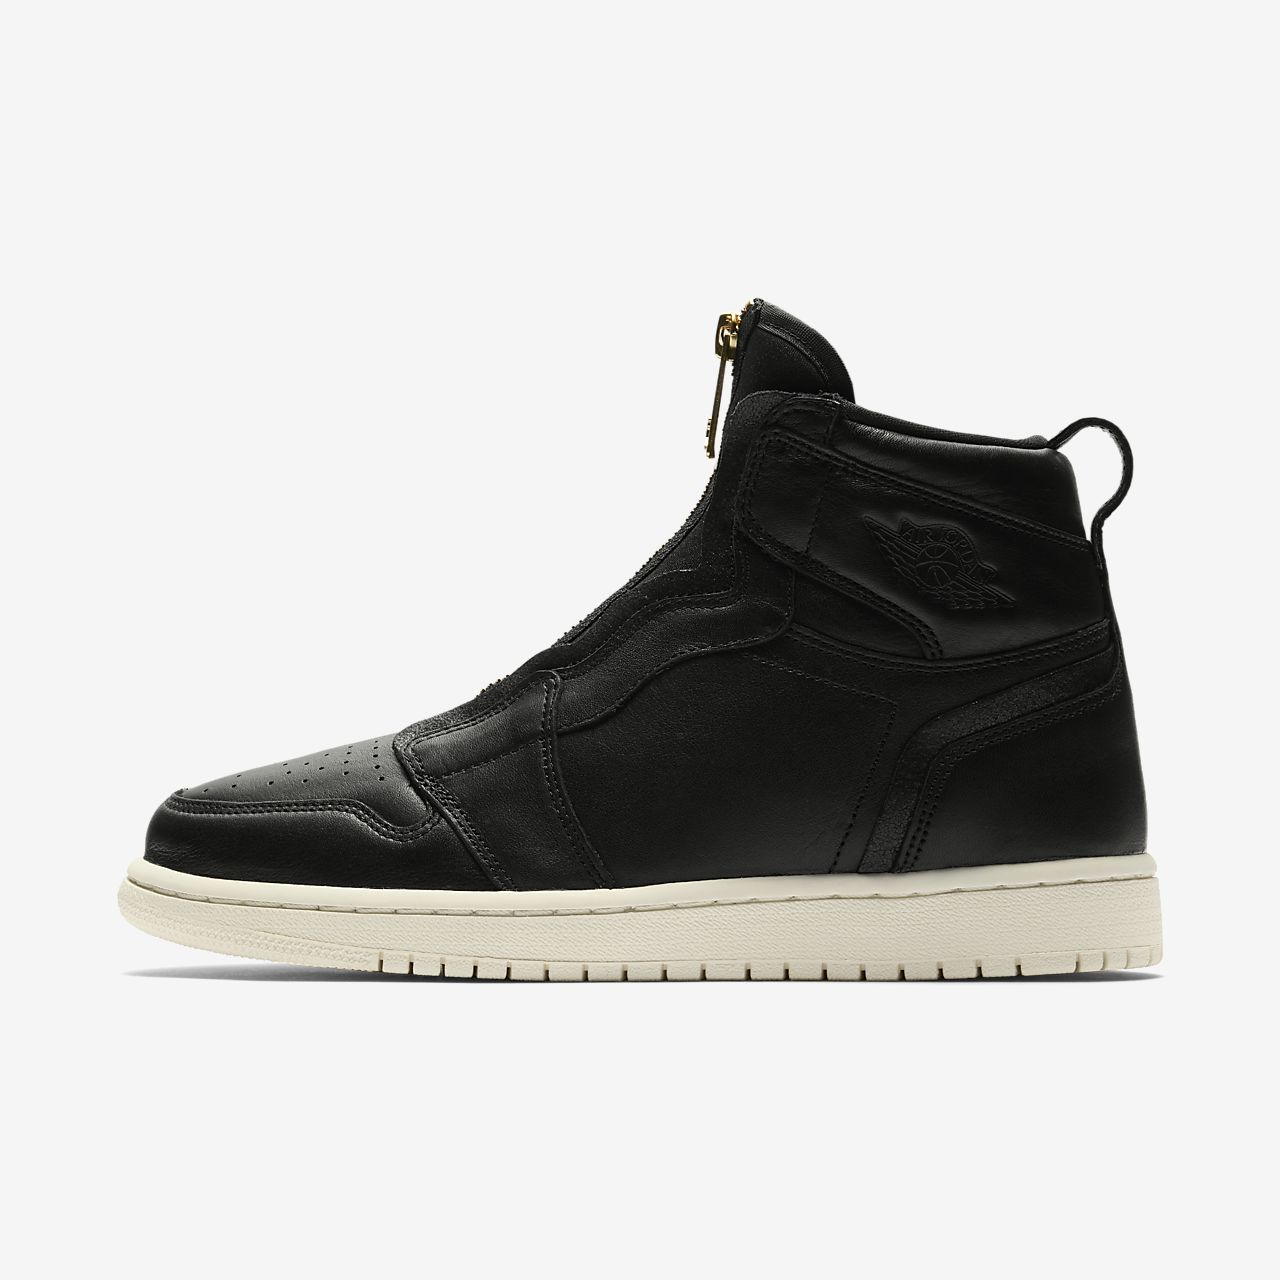 77a446c73d2 Air Jordan 1 High Zip Women s Shoe. Nike.com